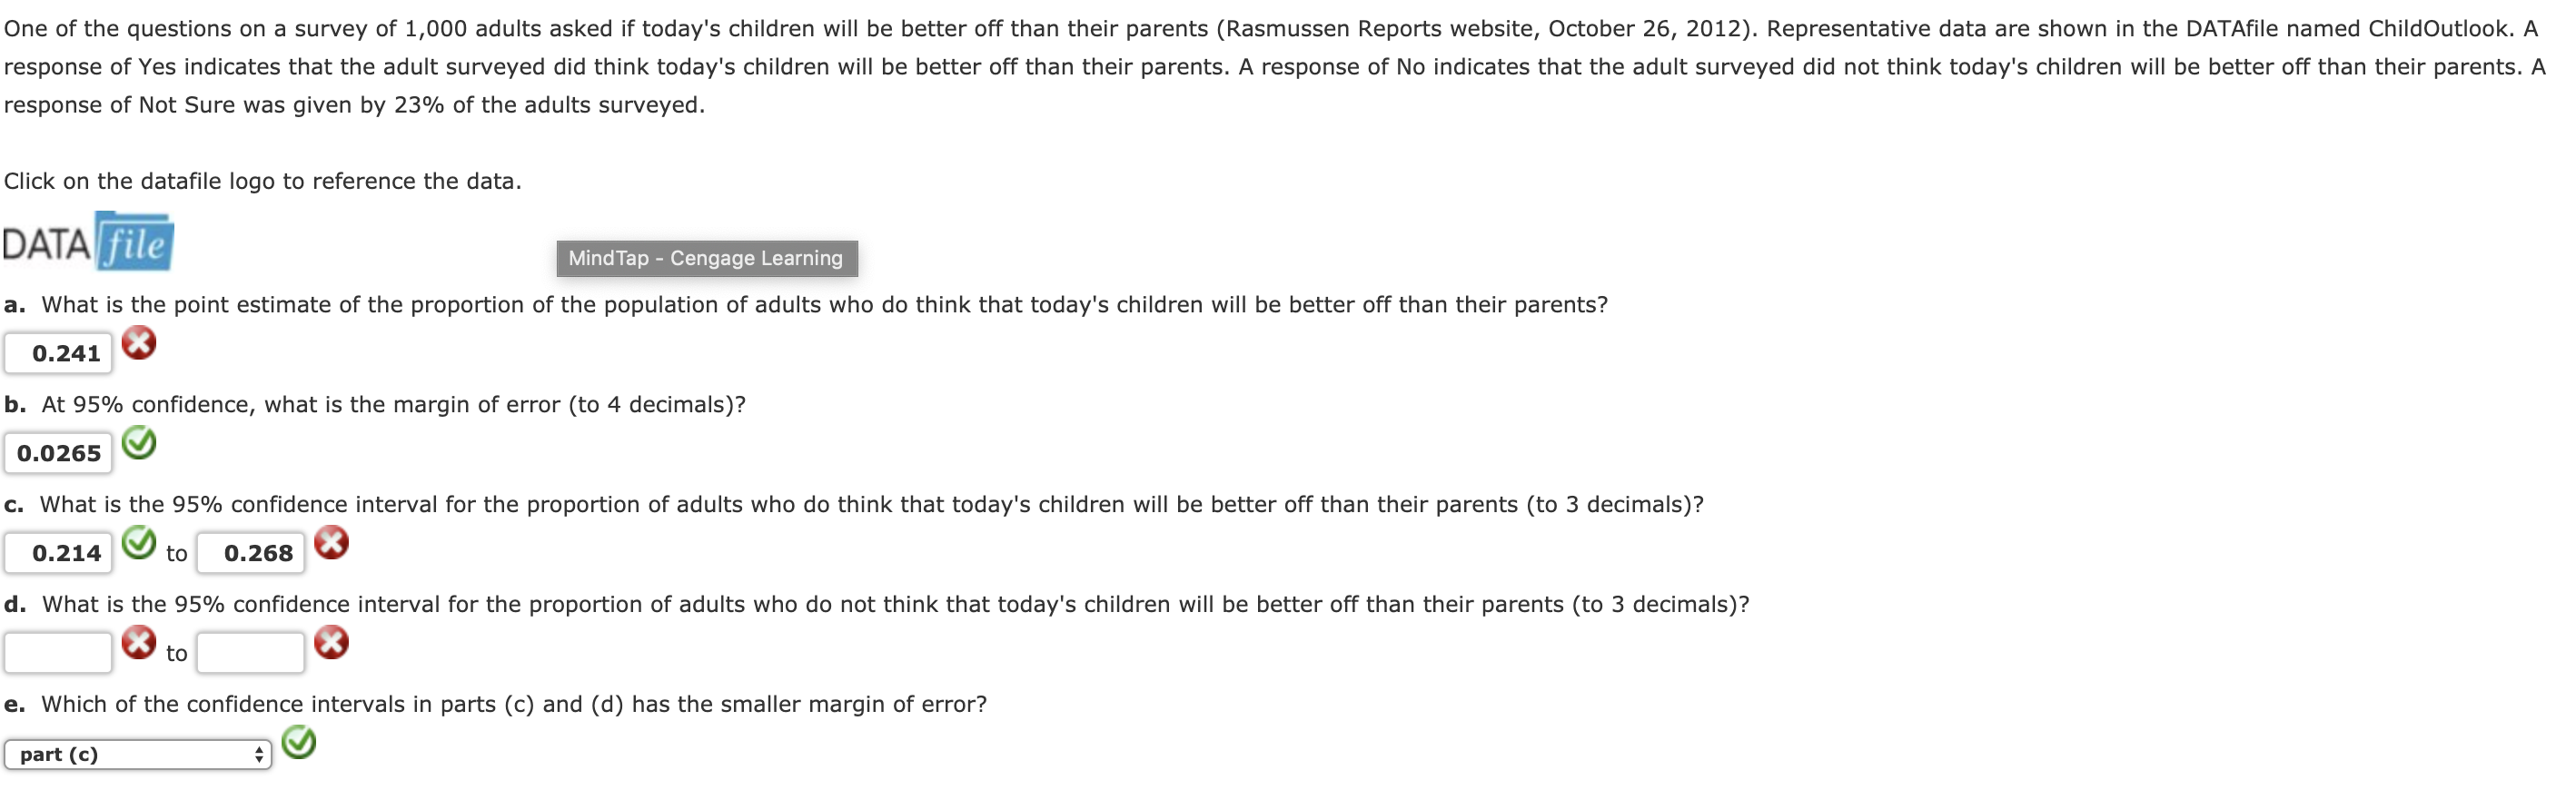 One of the questions on a survey of 1,000 adults asked if today's children will be better off than their parents (Rasmussen Reports website, October 26, 2012). Representative data are shown in the DATAfile named ChildOutlook. A response of Yes indicates that the adult surveyed did think today's children will be better off than their parents. A response of No indicates that the adult surveyed did not think today's children will be better off than their parents. A response of Not sure was given by 23% of the adults surveyed. Click on the datafile logo to reference the data DATA file MindTap - Cengage Learning a. What is the point estimate of the proportion of the population of adults who do think that today's children will be better off than their parents? 0.241 b. At 95% confidence, what is the margin of error (to 4 decimals)? 0.0265 c what is the 95% confidence interval for the proportion of adults who do think that today's children will be better off than their parents to 3 decimals ? 0.214to 0.268 d, what is the 95% confidence interval for the proportion of adults who do not think that today's children will be better off than their parents(to 3 decimals)? to e. Which of the confidence intervals in parts (c) and (d) has the smaller margin of error? part (c)